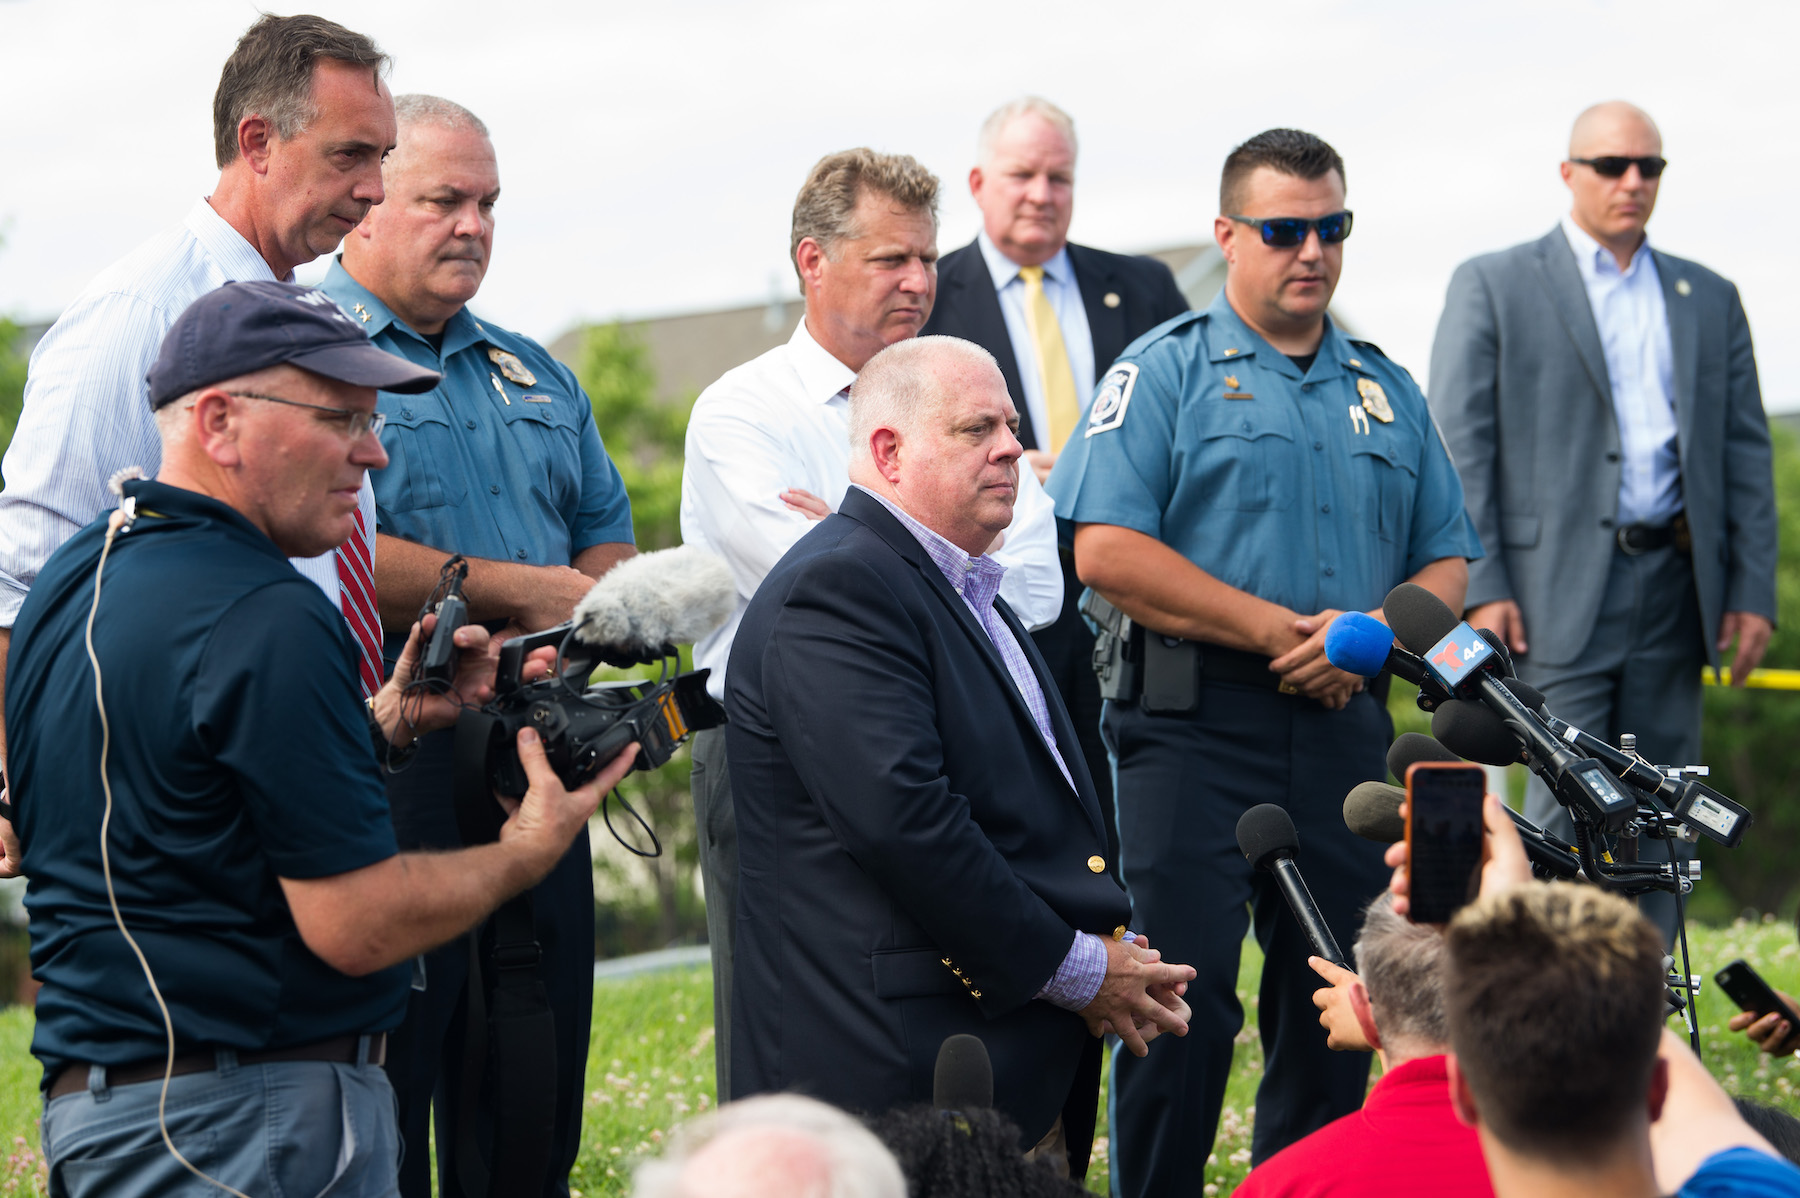 <div class='meta'><div class='origin-logo' data-origin='Creative Content'></div><span class='caption-text' data-credit='Saul Loeb/AFP/Getty Images'>Maryland Governor Larry Hogan (C) speaks during a press conference following a shooting in Annapolis, Maryland, June 28, 2018.</span></div>